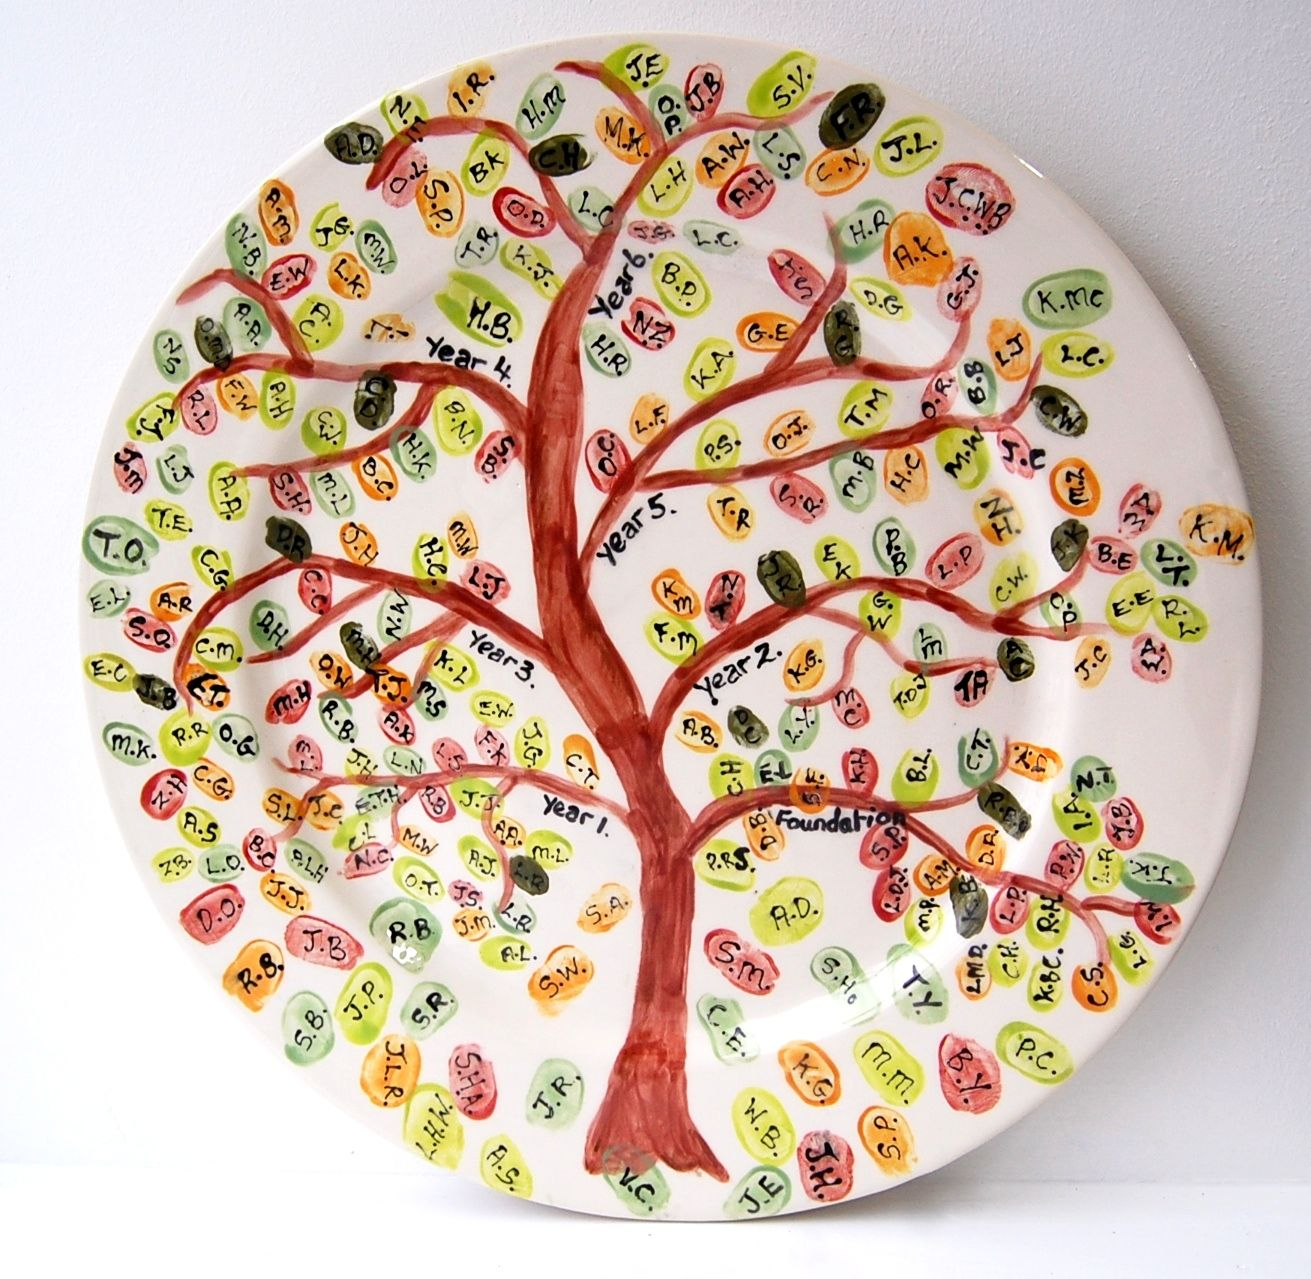 country love crafts ceramic pottery painting ideas handpainted fingerprint keepsake school plate pottery design ideas - Pottery Design Ideas